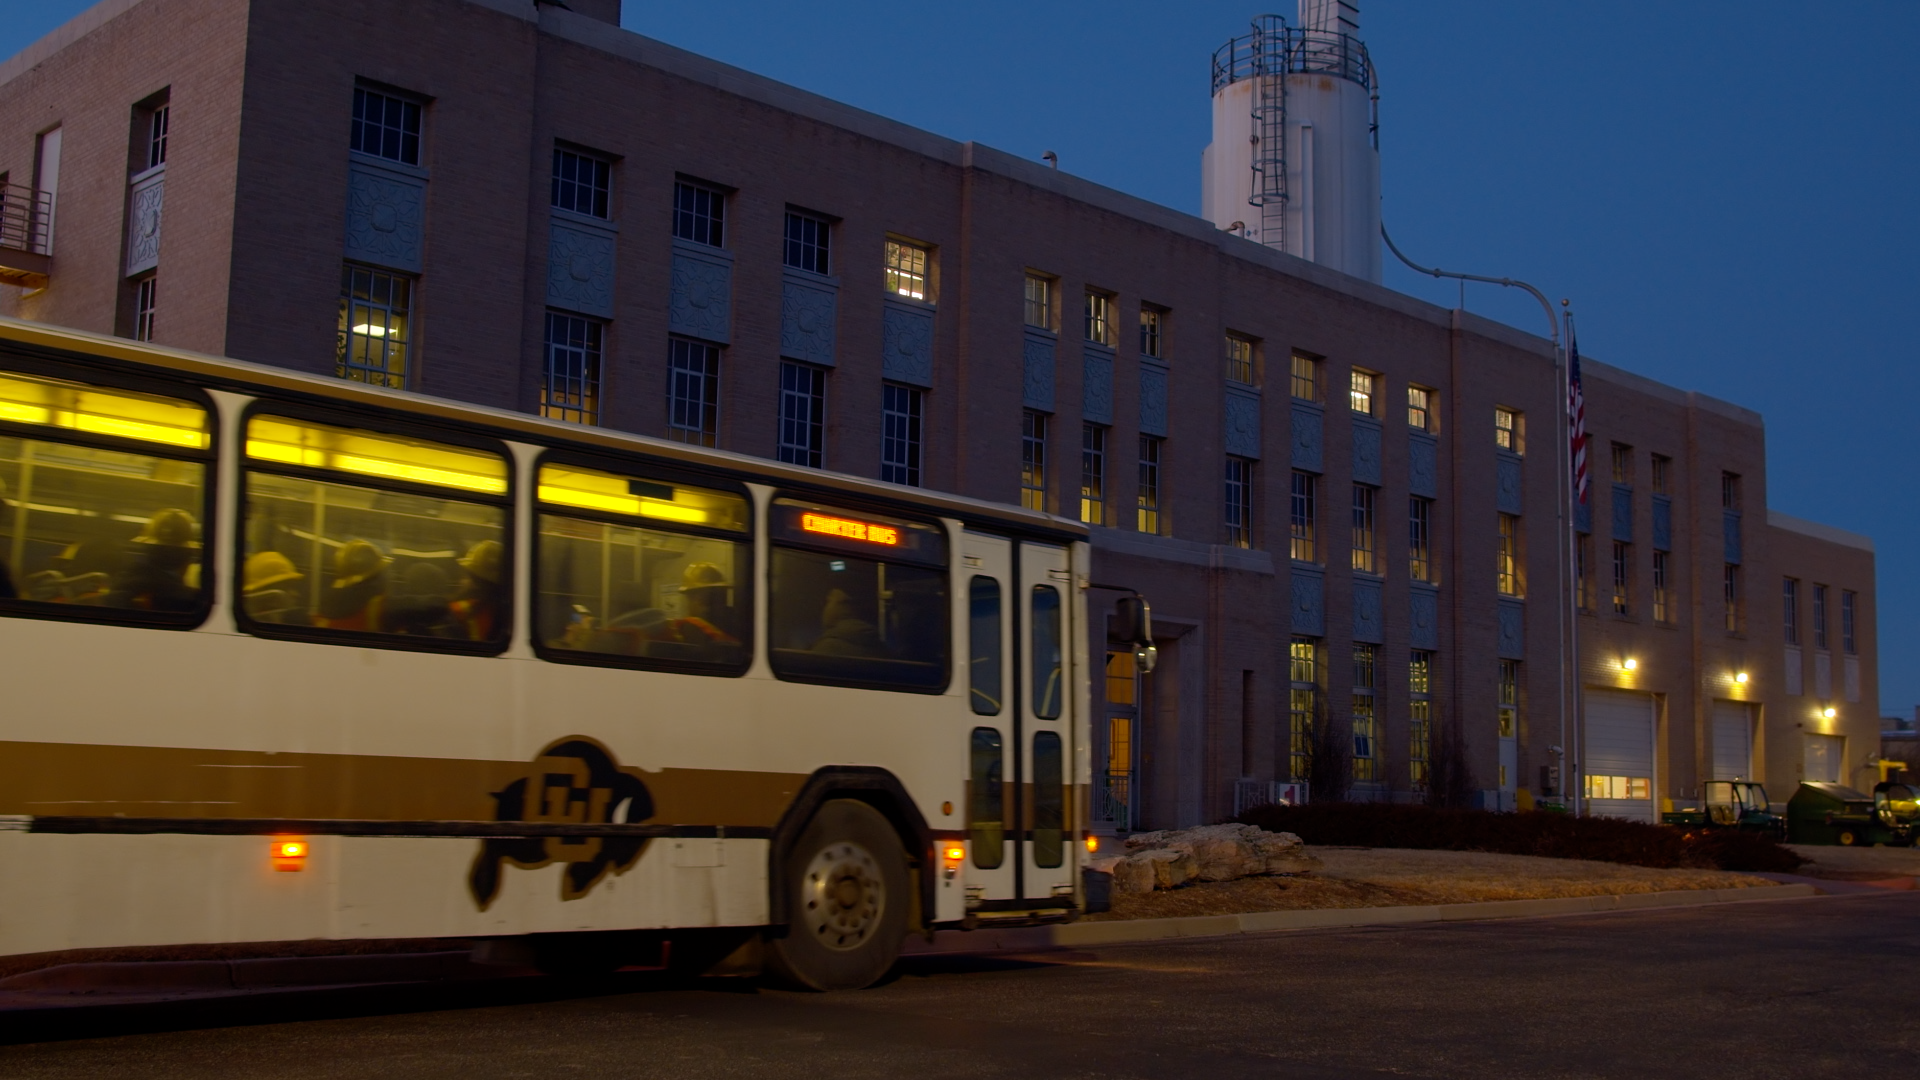 A bus with the logo of the CU rams on the side is in front of a large building at dusk, with the lights.